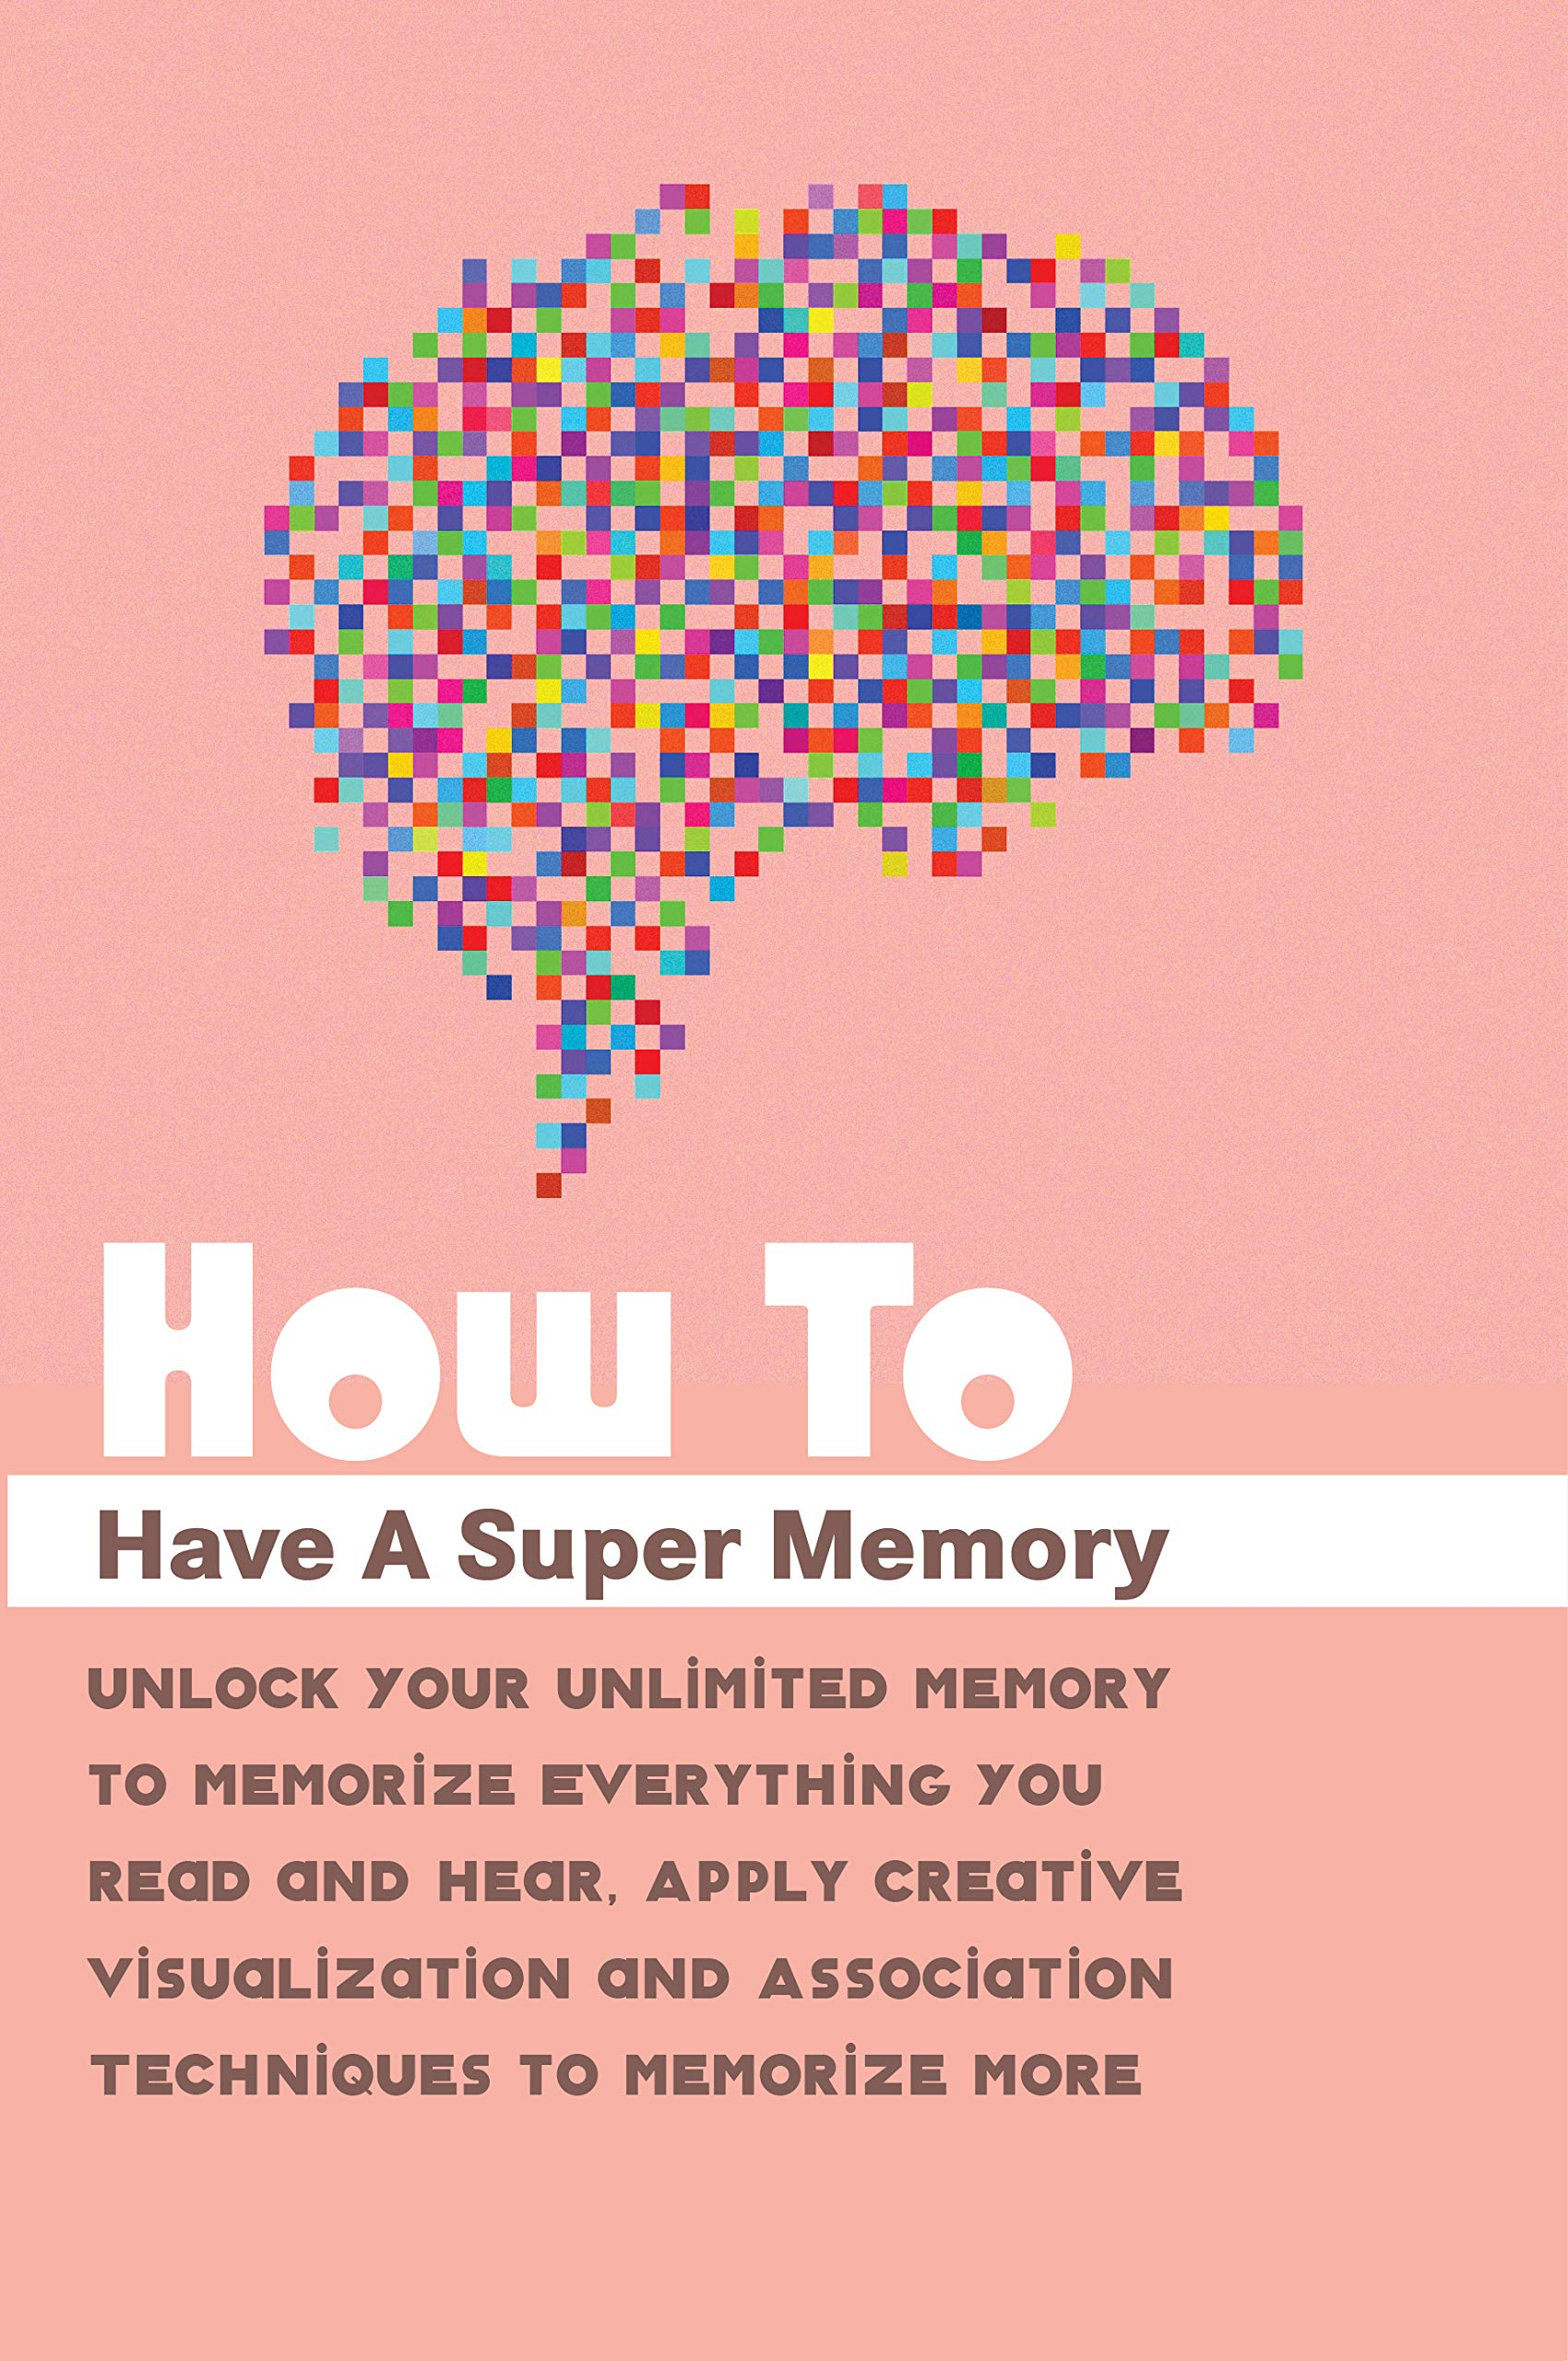 How To Have A Super Memory- Unlock Your Unlimited Memory To Memorize Everything You Read And Hear, Apply Creative Visualization And Association Techniques To Memorize More: Mind Hacking Book